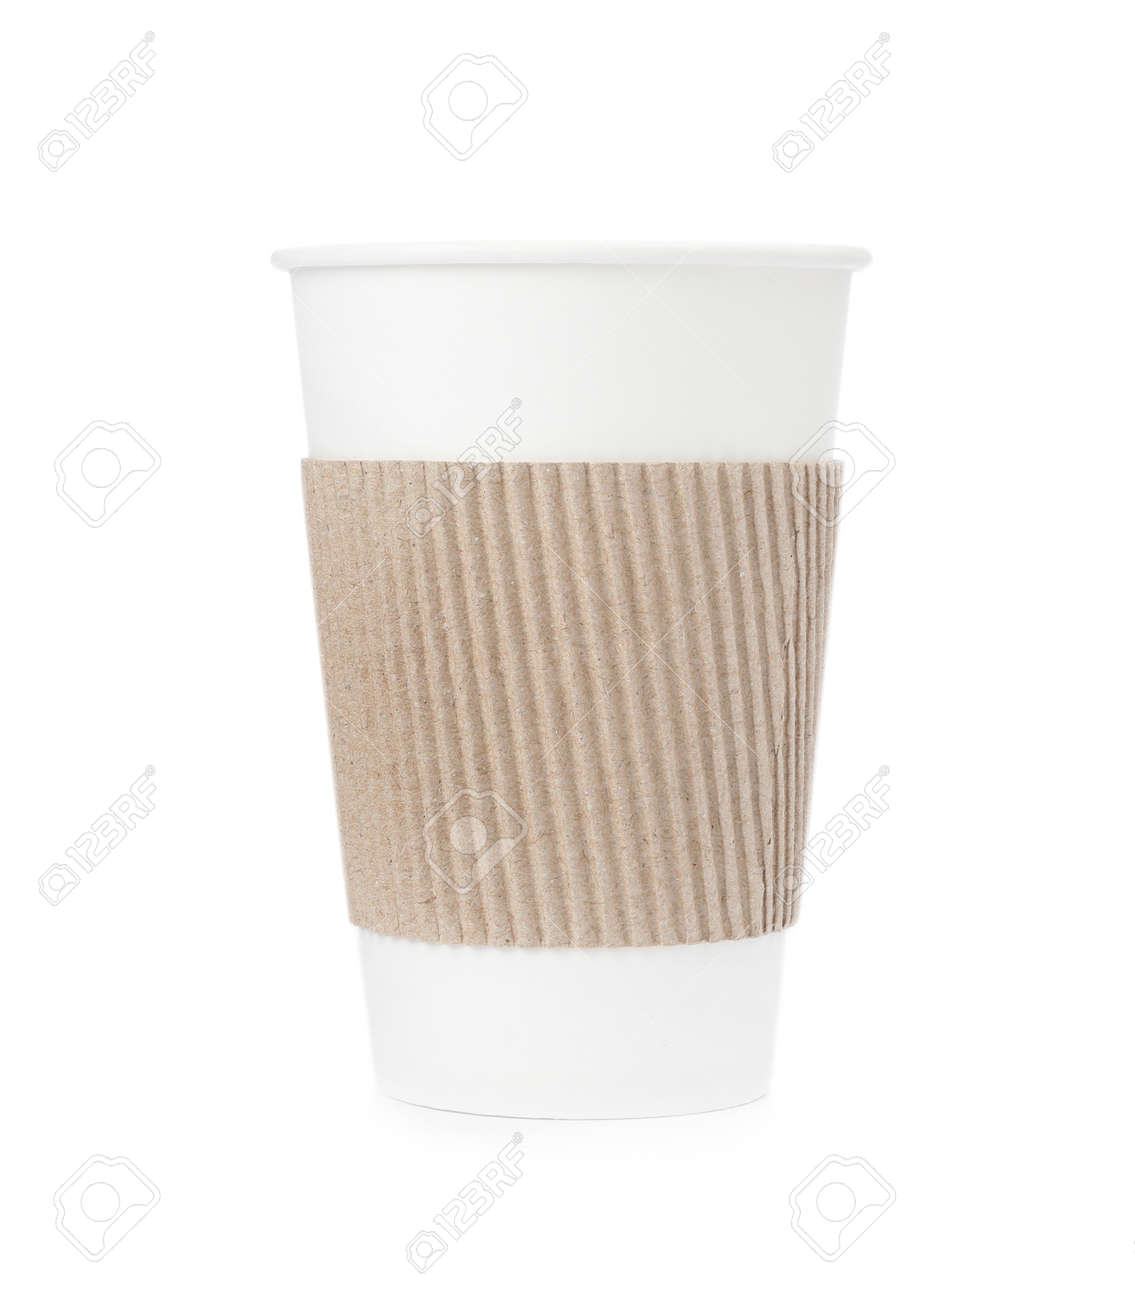 Takeaway paper coffee cup with cardboard sleeve isolated on white - 158336141